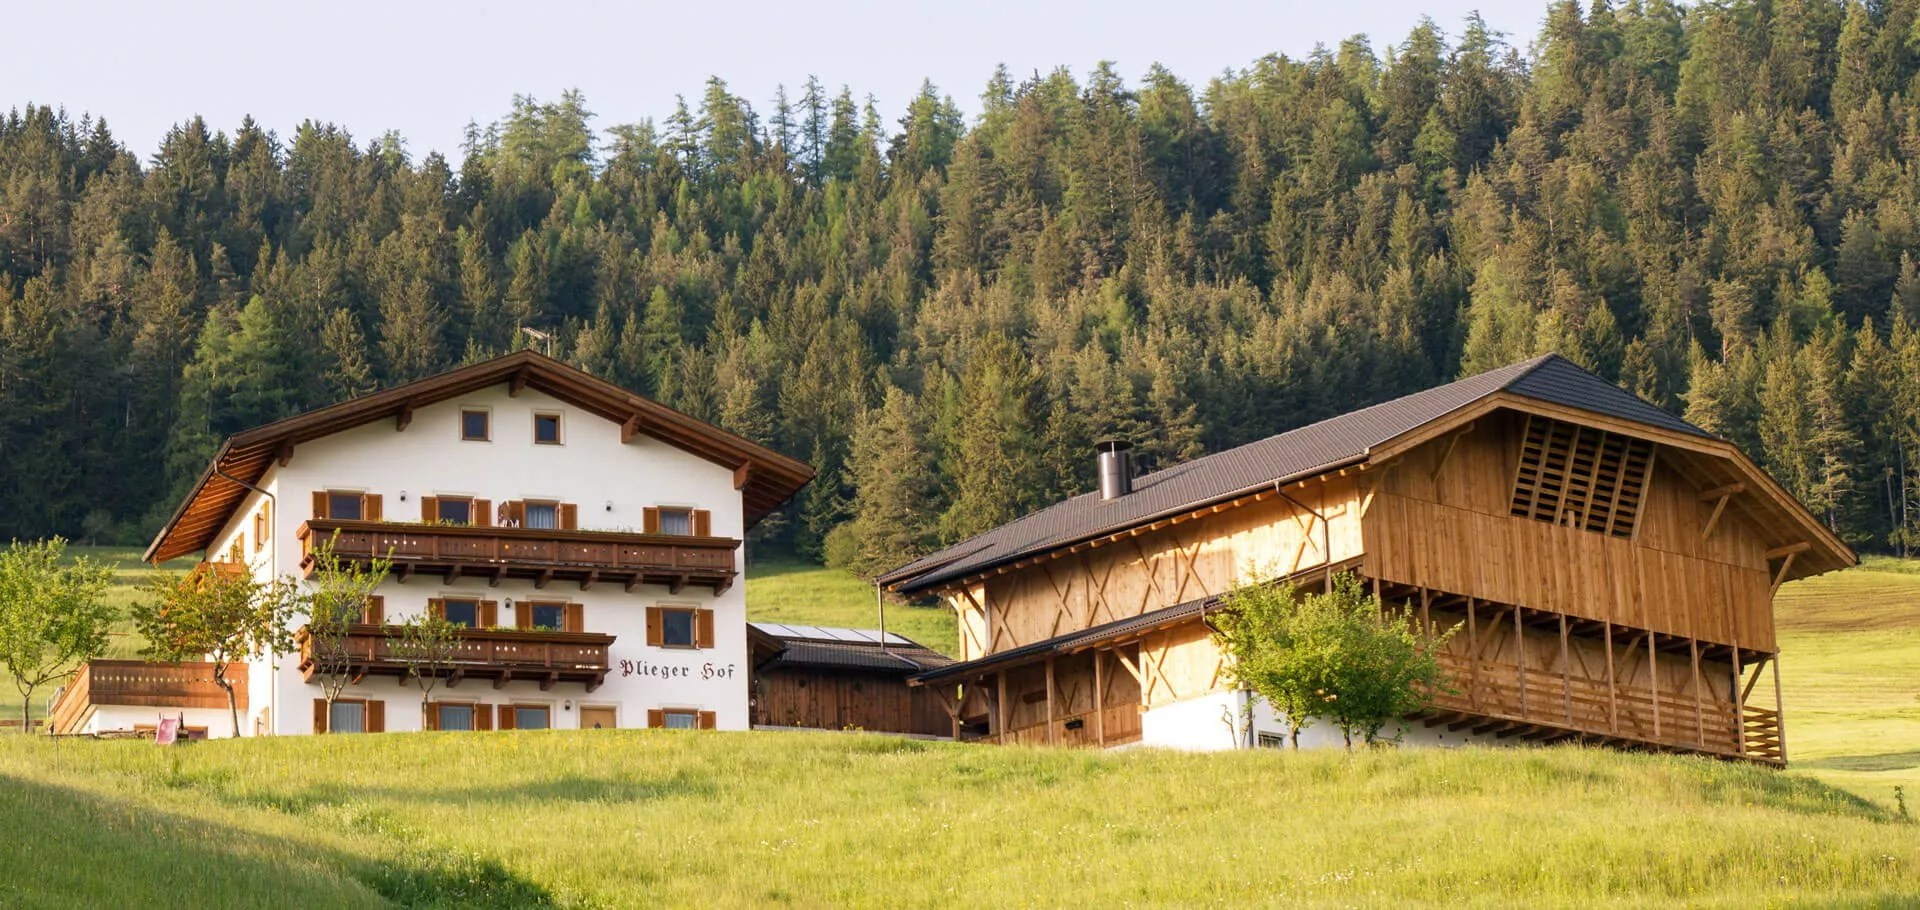 Plieger Contact Farm Holidays Siusi Allo Sciliar Holidays In The Dolomites